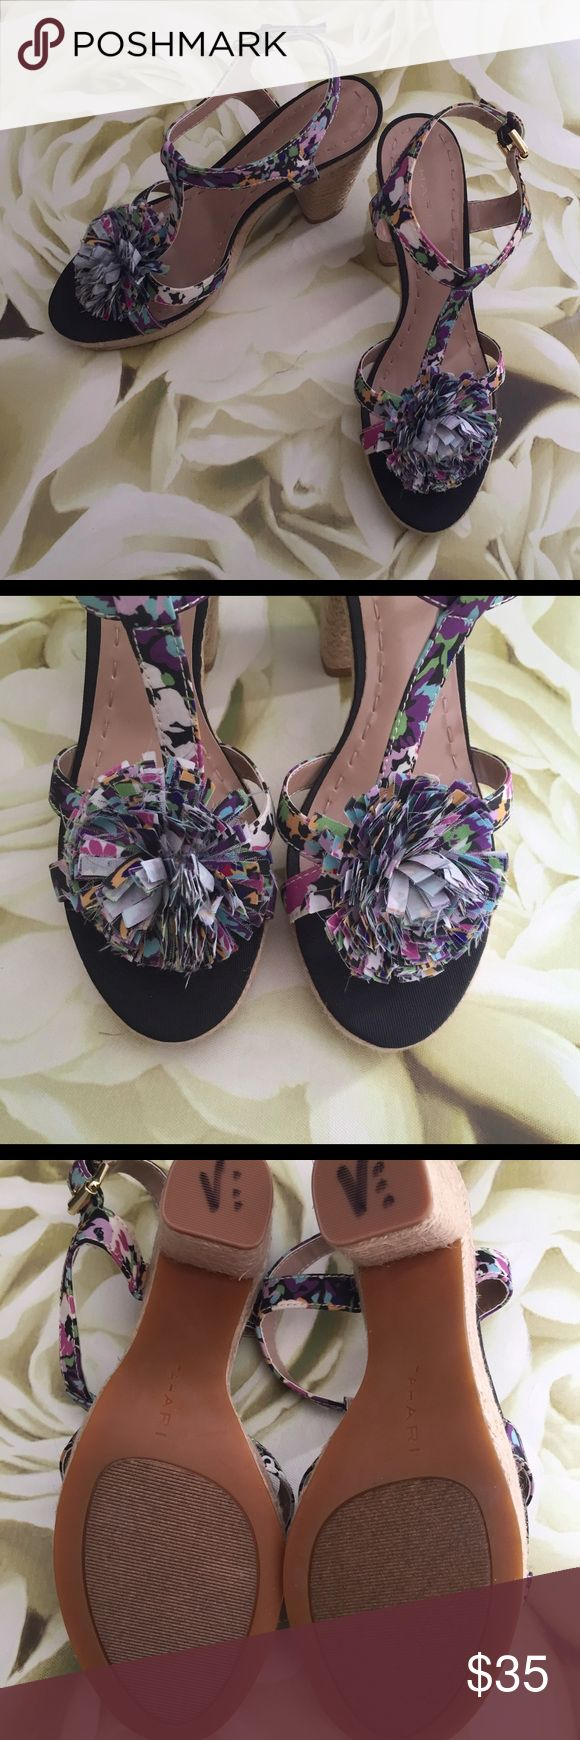 Tahari • Floral Espadrilles • NWOT Never worn! Floral print with a fun Pom! Perfect way to perk up any outfit! I ❤️ offers! Tahari Shoes Espadrilles